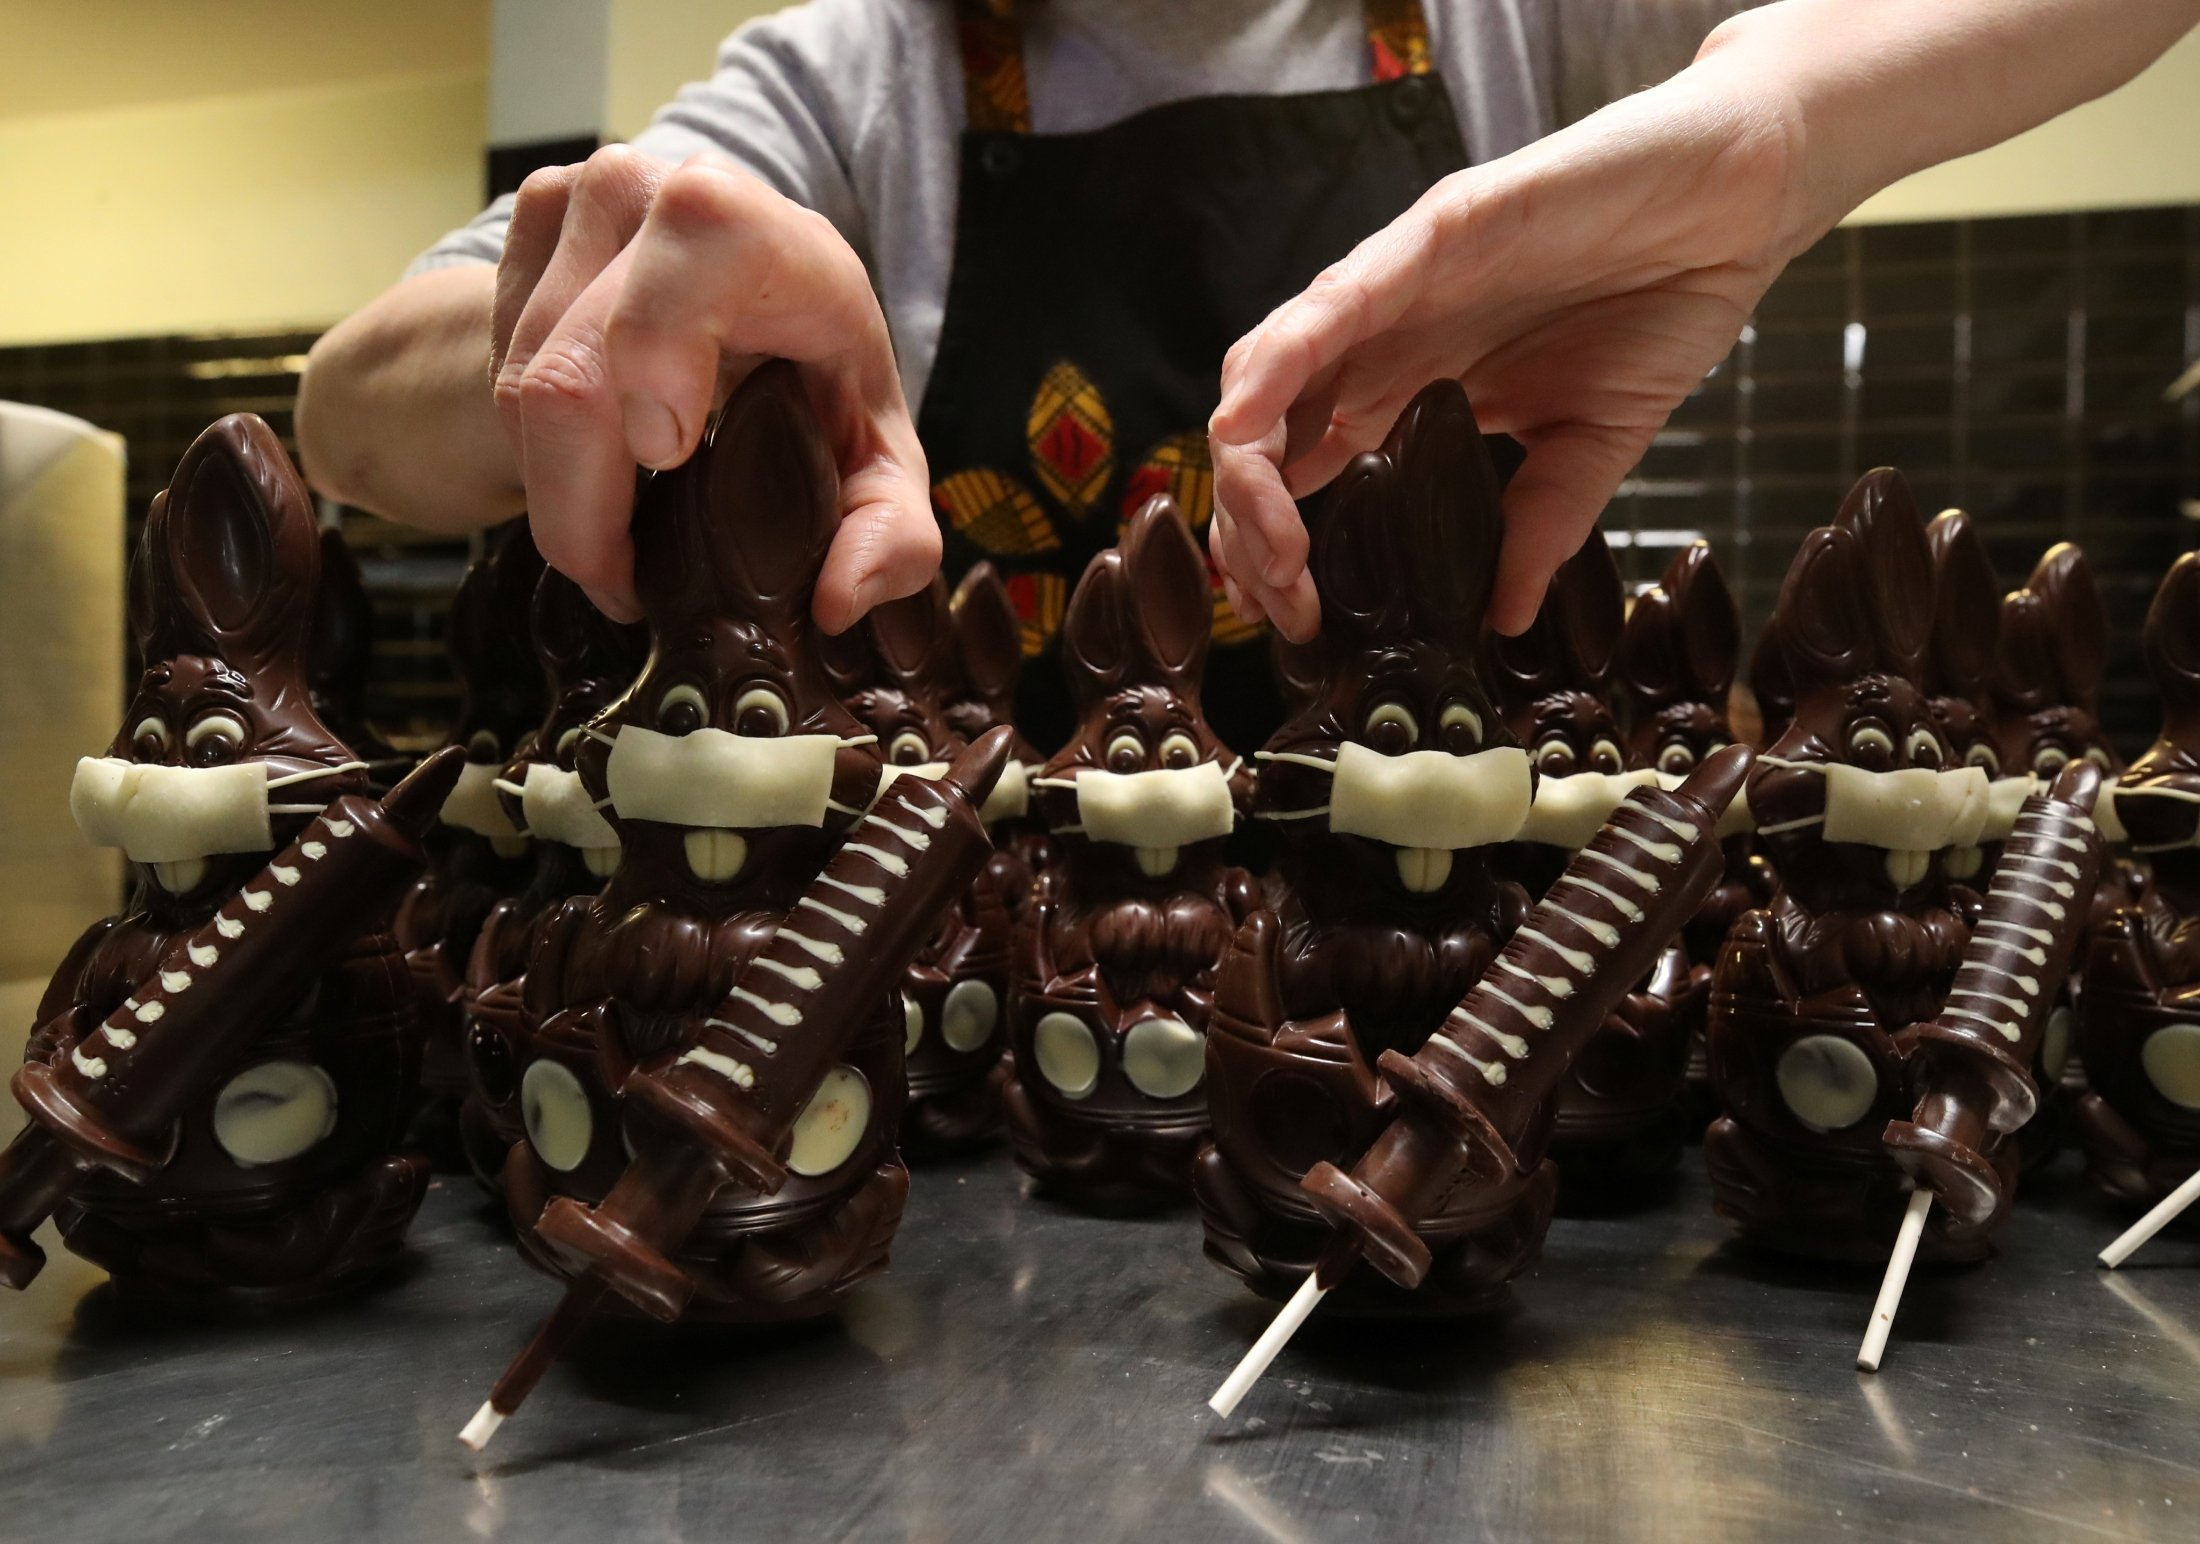 Belgian artisan chocolate maker Genevieve Trepant worksonchocolate bunnieswearing a protective mask and holding a vaccine syringe called 'L'Atch'a Azteka' at her workshop, Cocoatree in Lonzee, Belgium, April 30, 2021. (Reuters Photo)